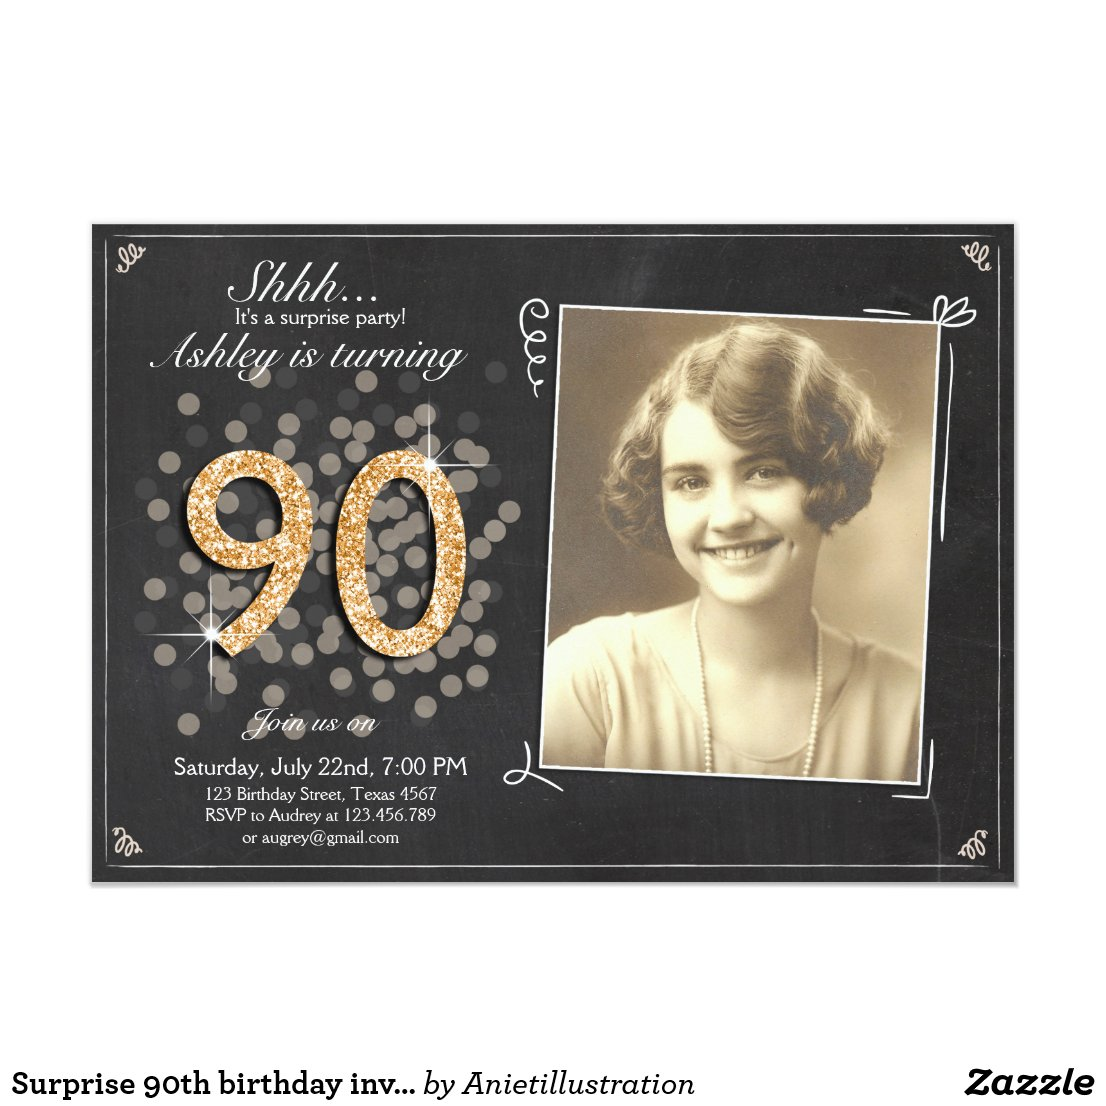 Surprise 90th birthday invite